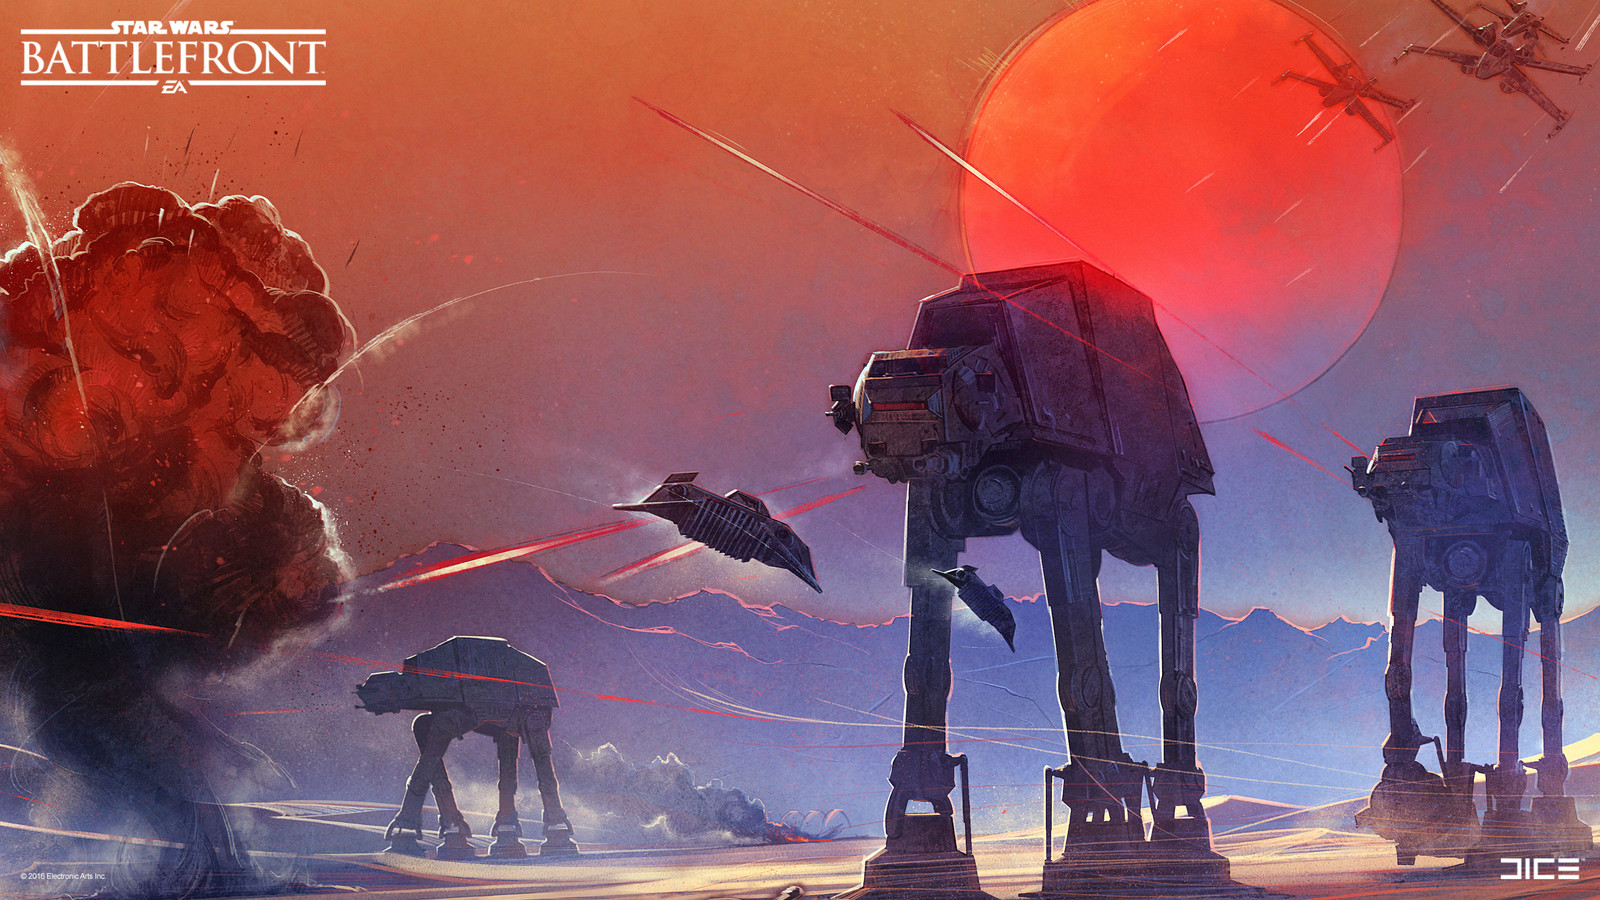 Inspirational poster for the Star Wars Battlefront team at DICE (detail). (2015)